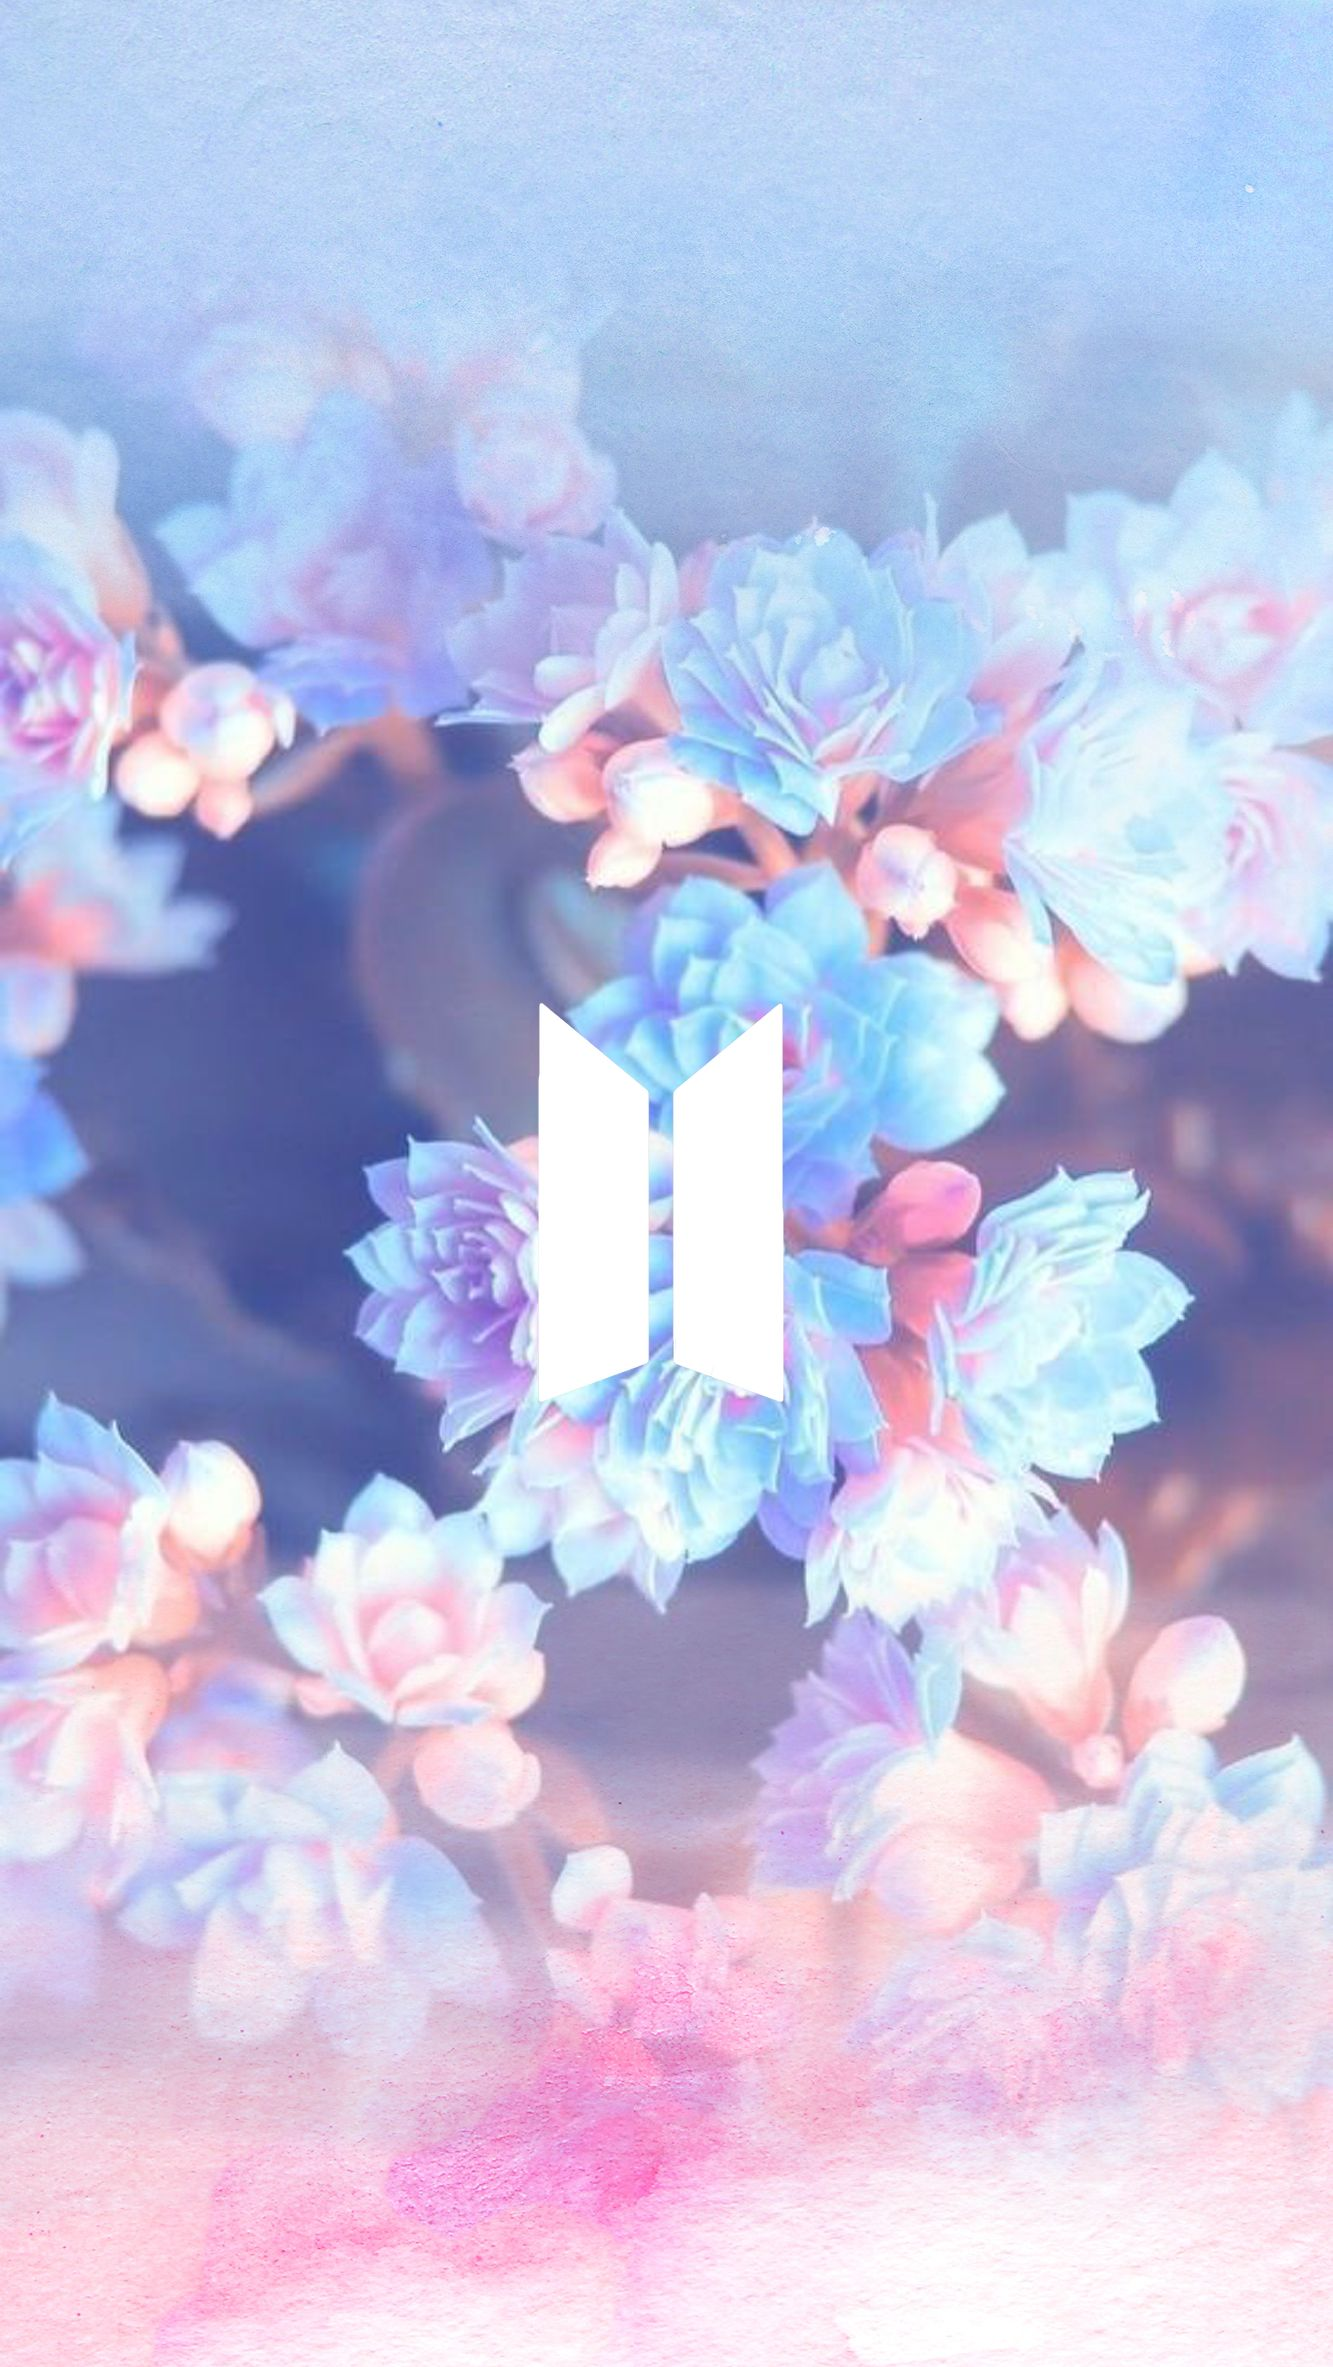 Bts S Symbol Over A Pink And Blue Watercolor And Flower Background Bts Wallpaper Clouds Wallpaper Iphone Bts Backgrounds